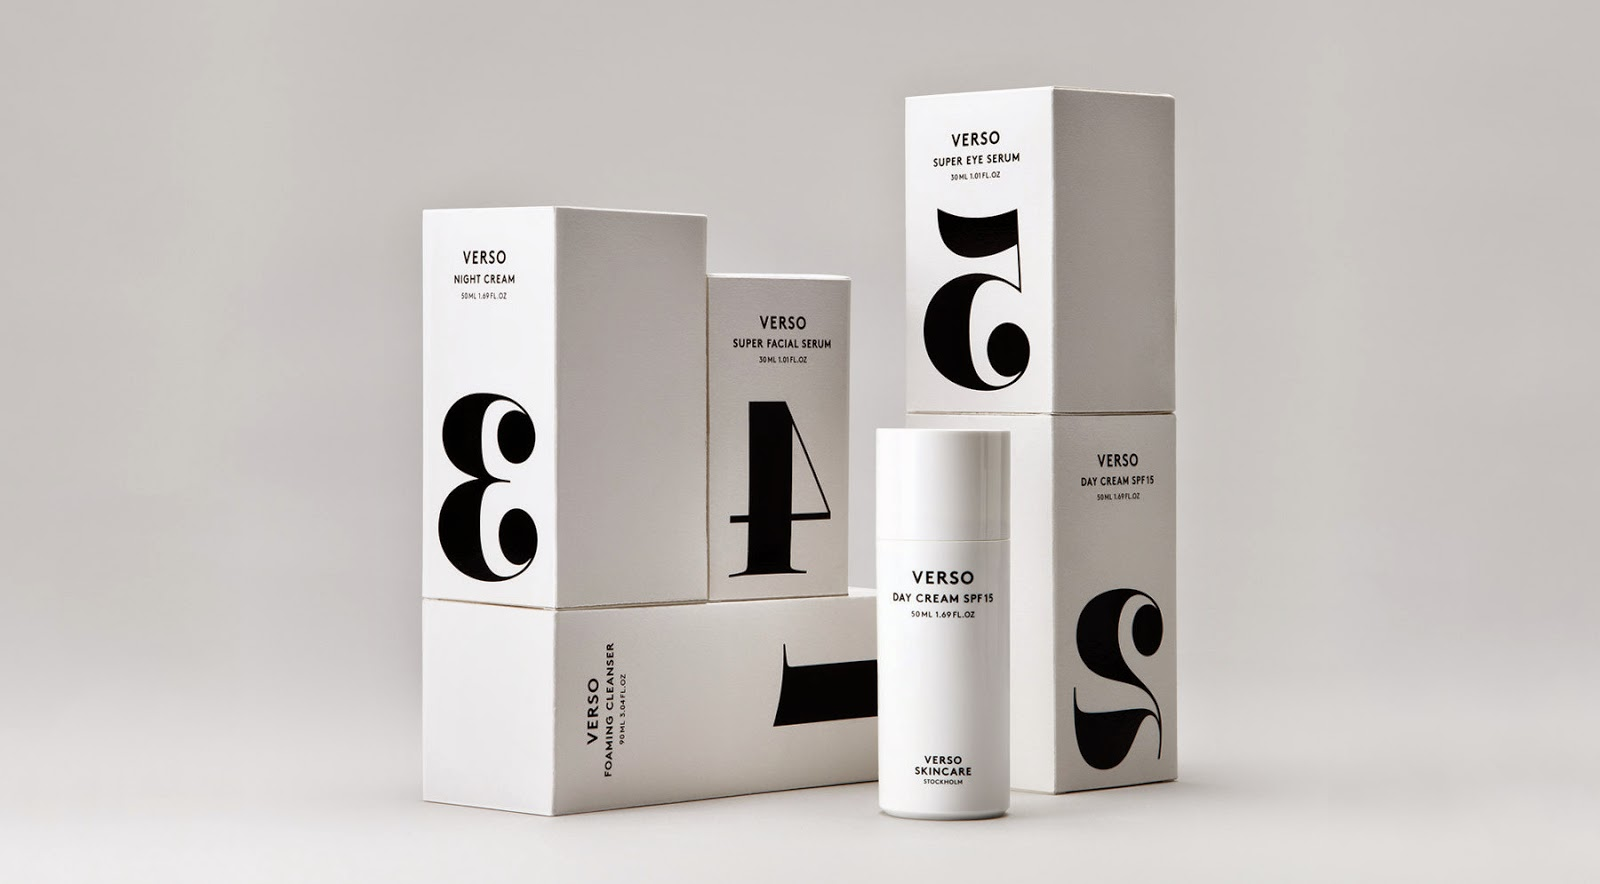 Verso-products